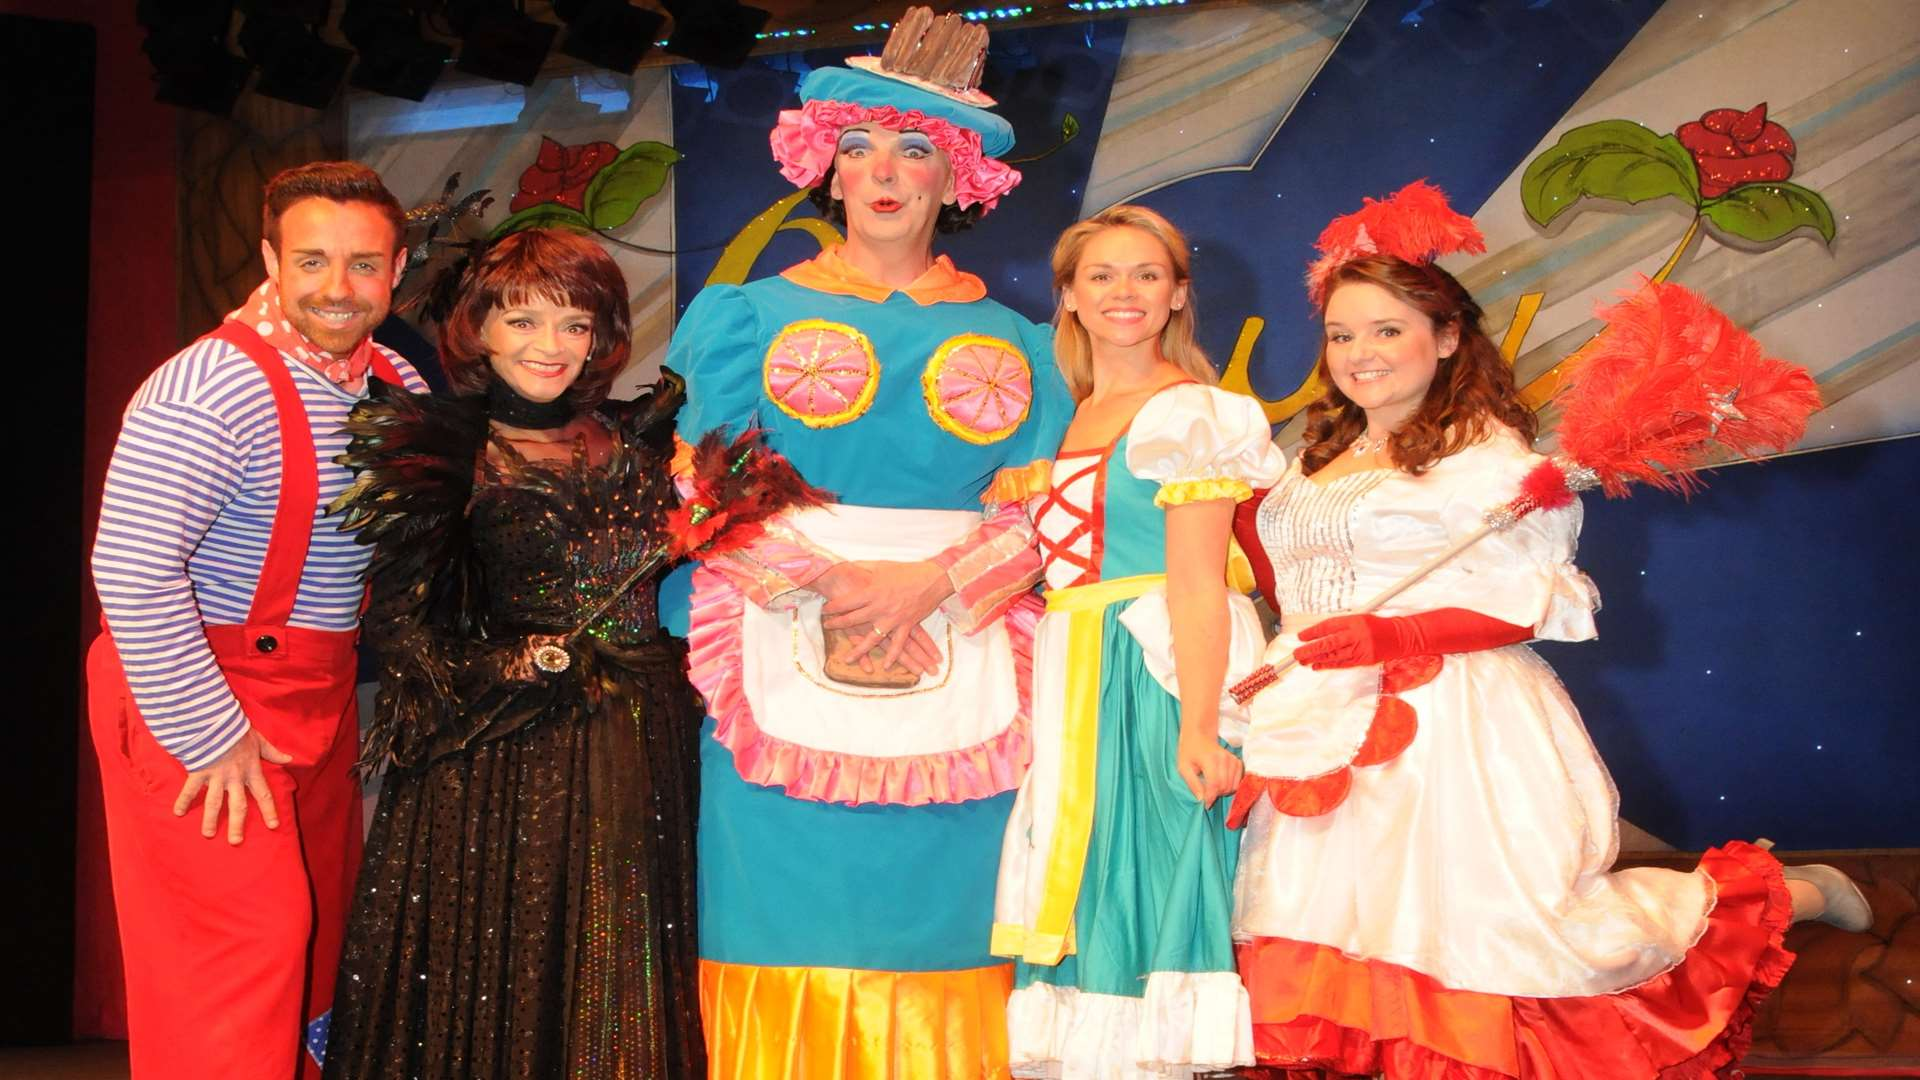 Stevi Ritchie as Potty Pierre, Sue Holderness as Malevolent, Michael Neilson as Dame Dotty Derier, Katy Ray as Beauty, and Sarah Lark as Fairy Formidable.